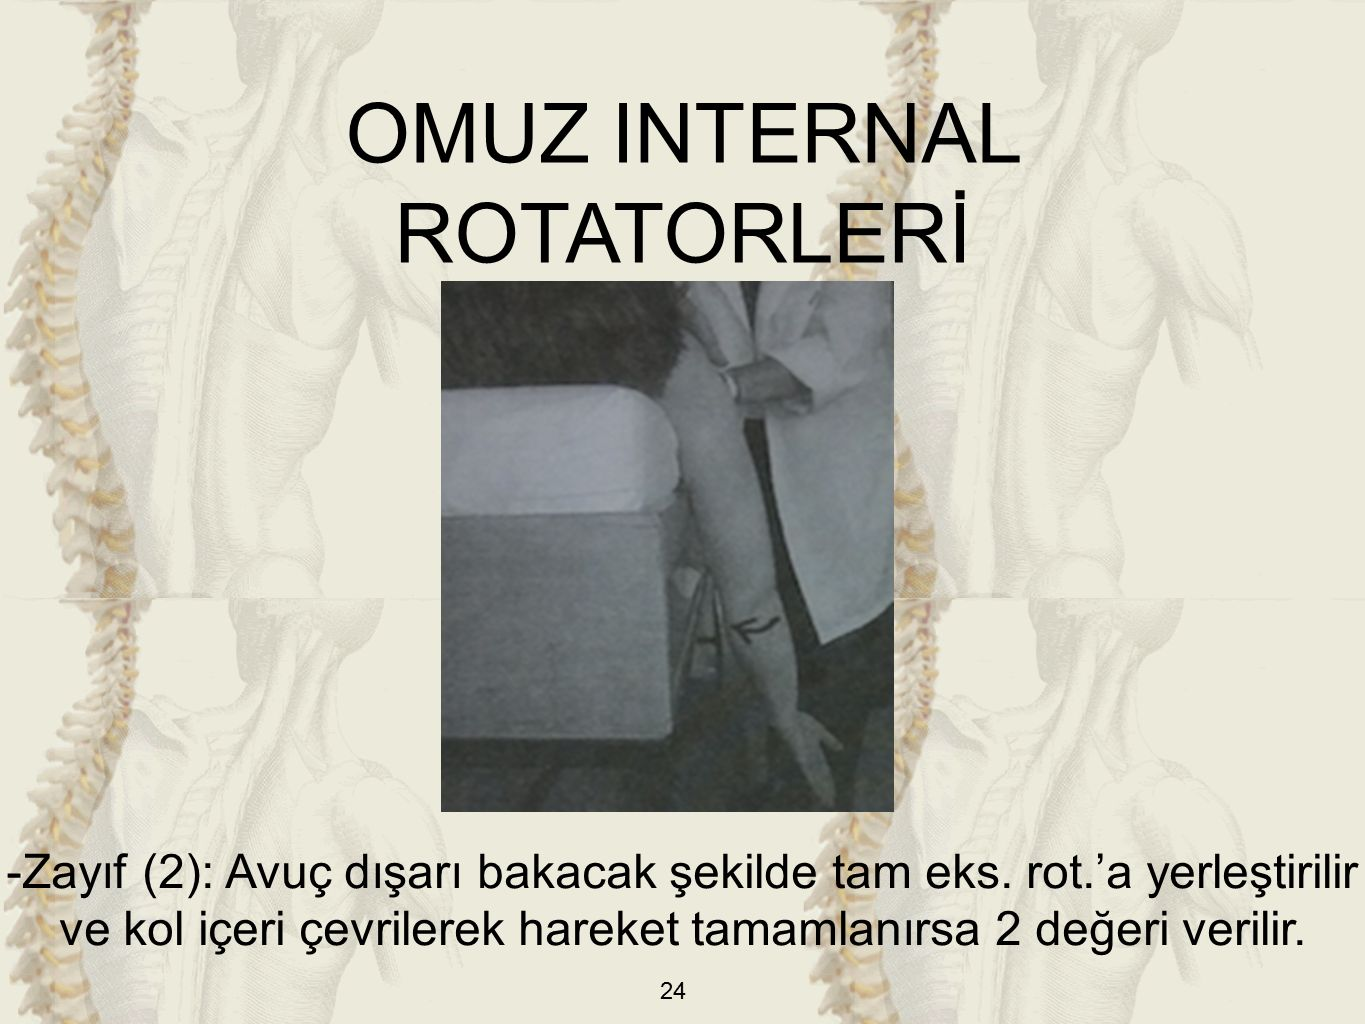 OMUZ INTERNAL ROTATORLERİ